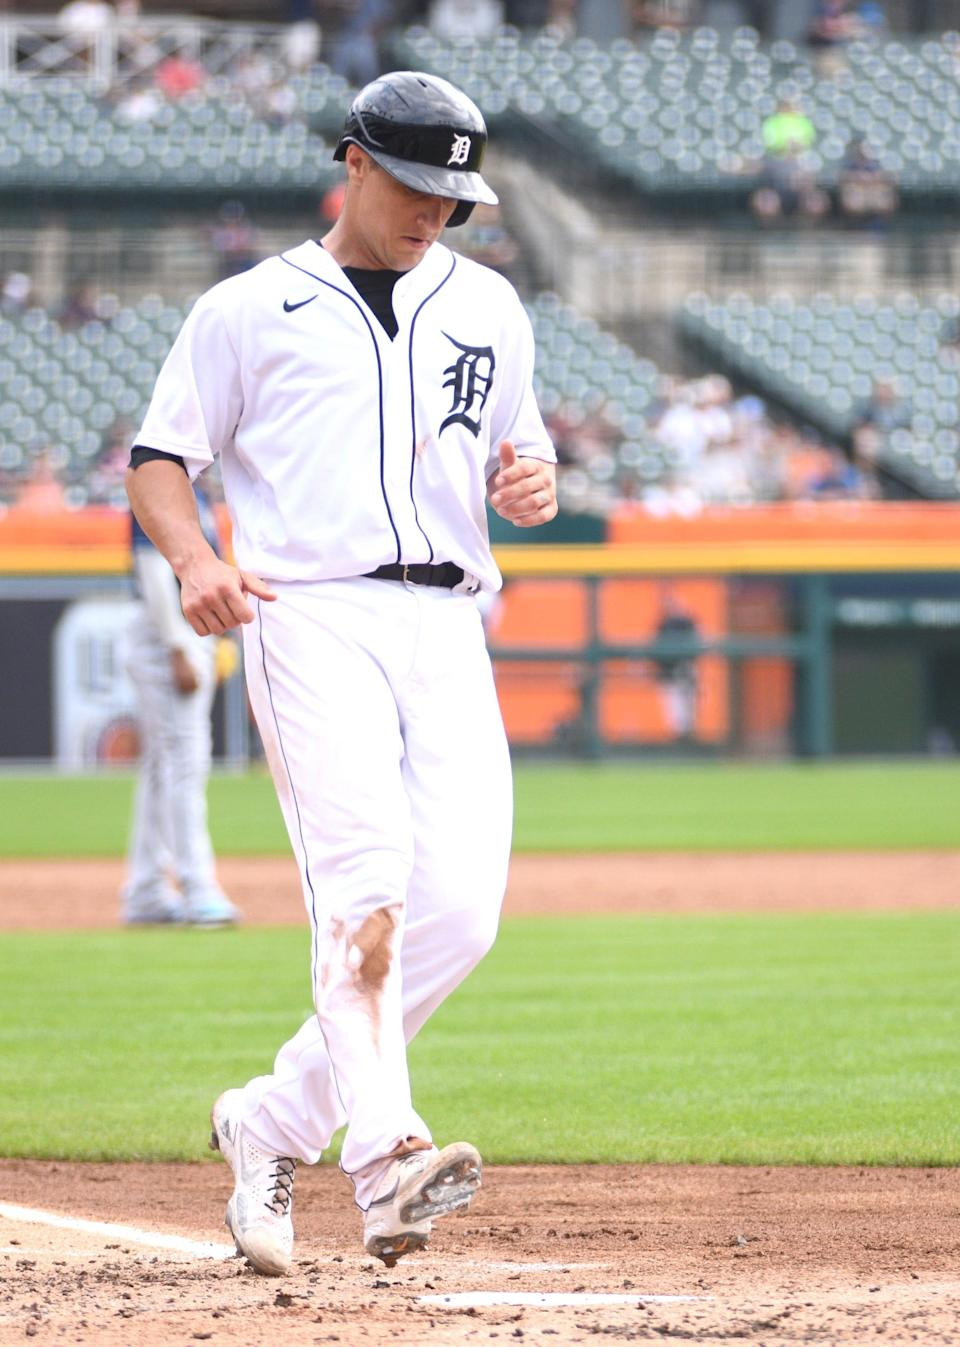 Detroit Tigers catcher Dustin Garneau scores during the third inning against the Tampa Bay Rays at Comerica Park, Sept. 12, 2021.